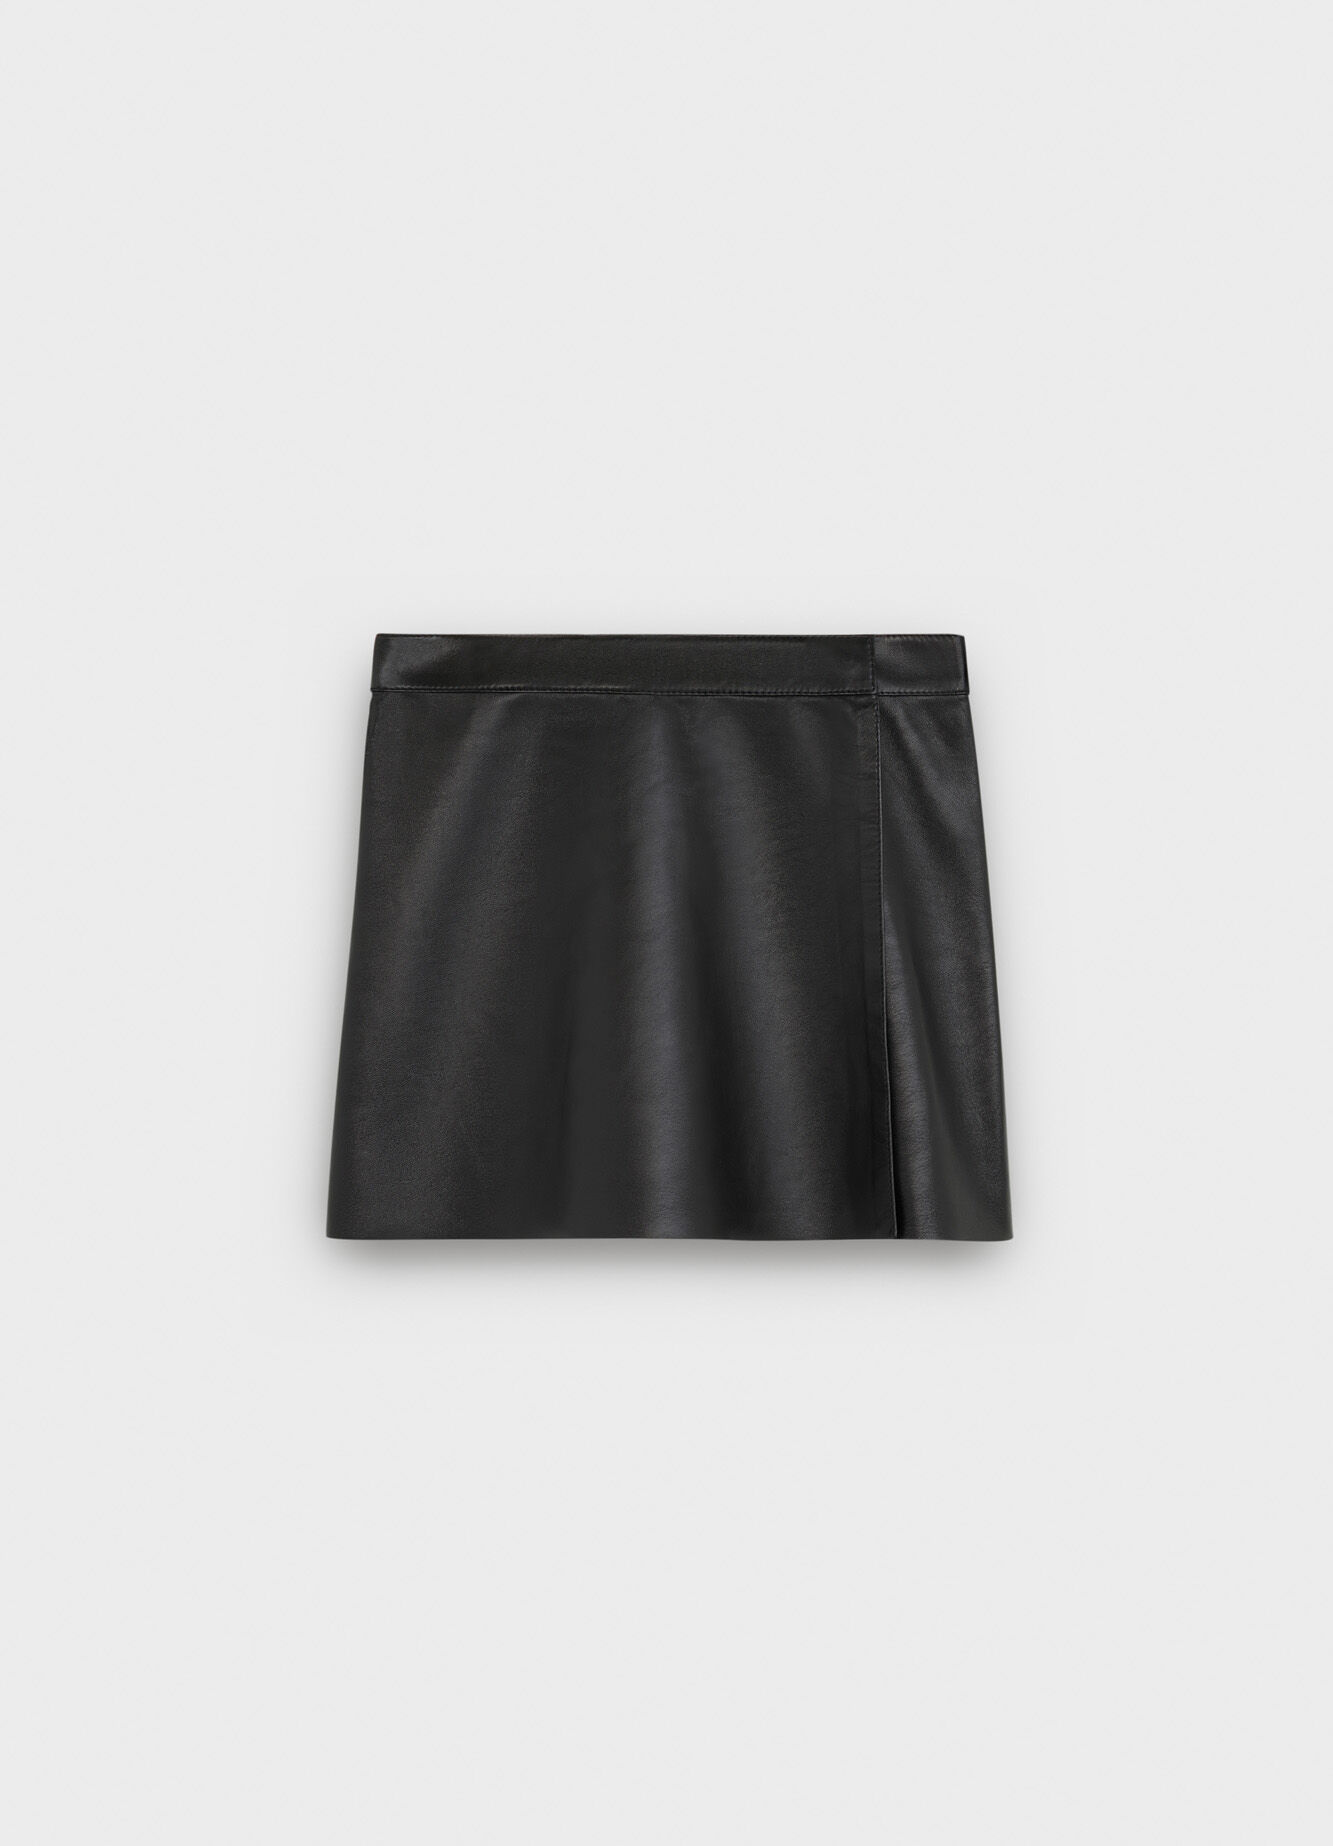 CELINE SHORT KILT SKIRT IN TUMBLED LAMBSKIN